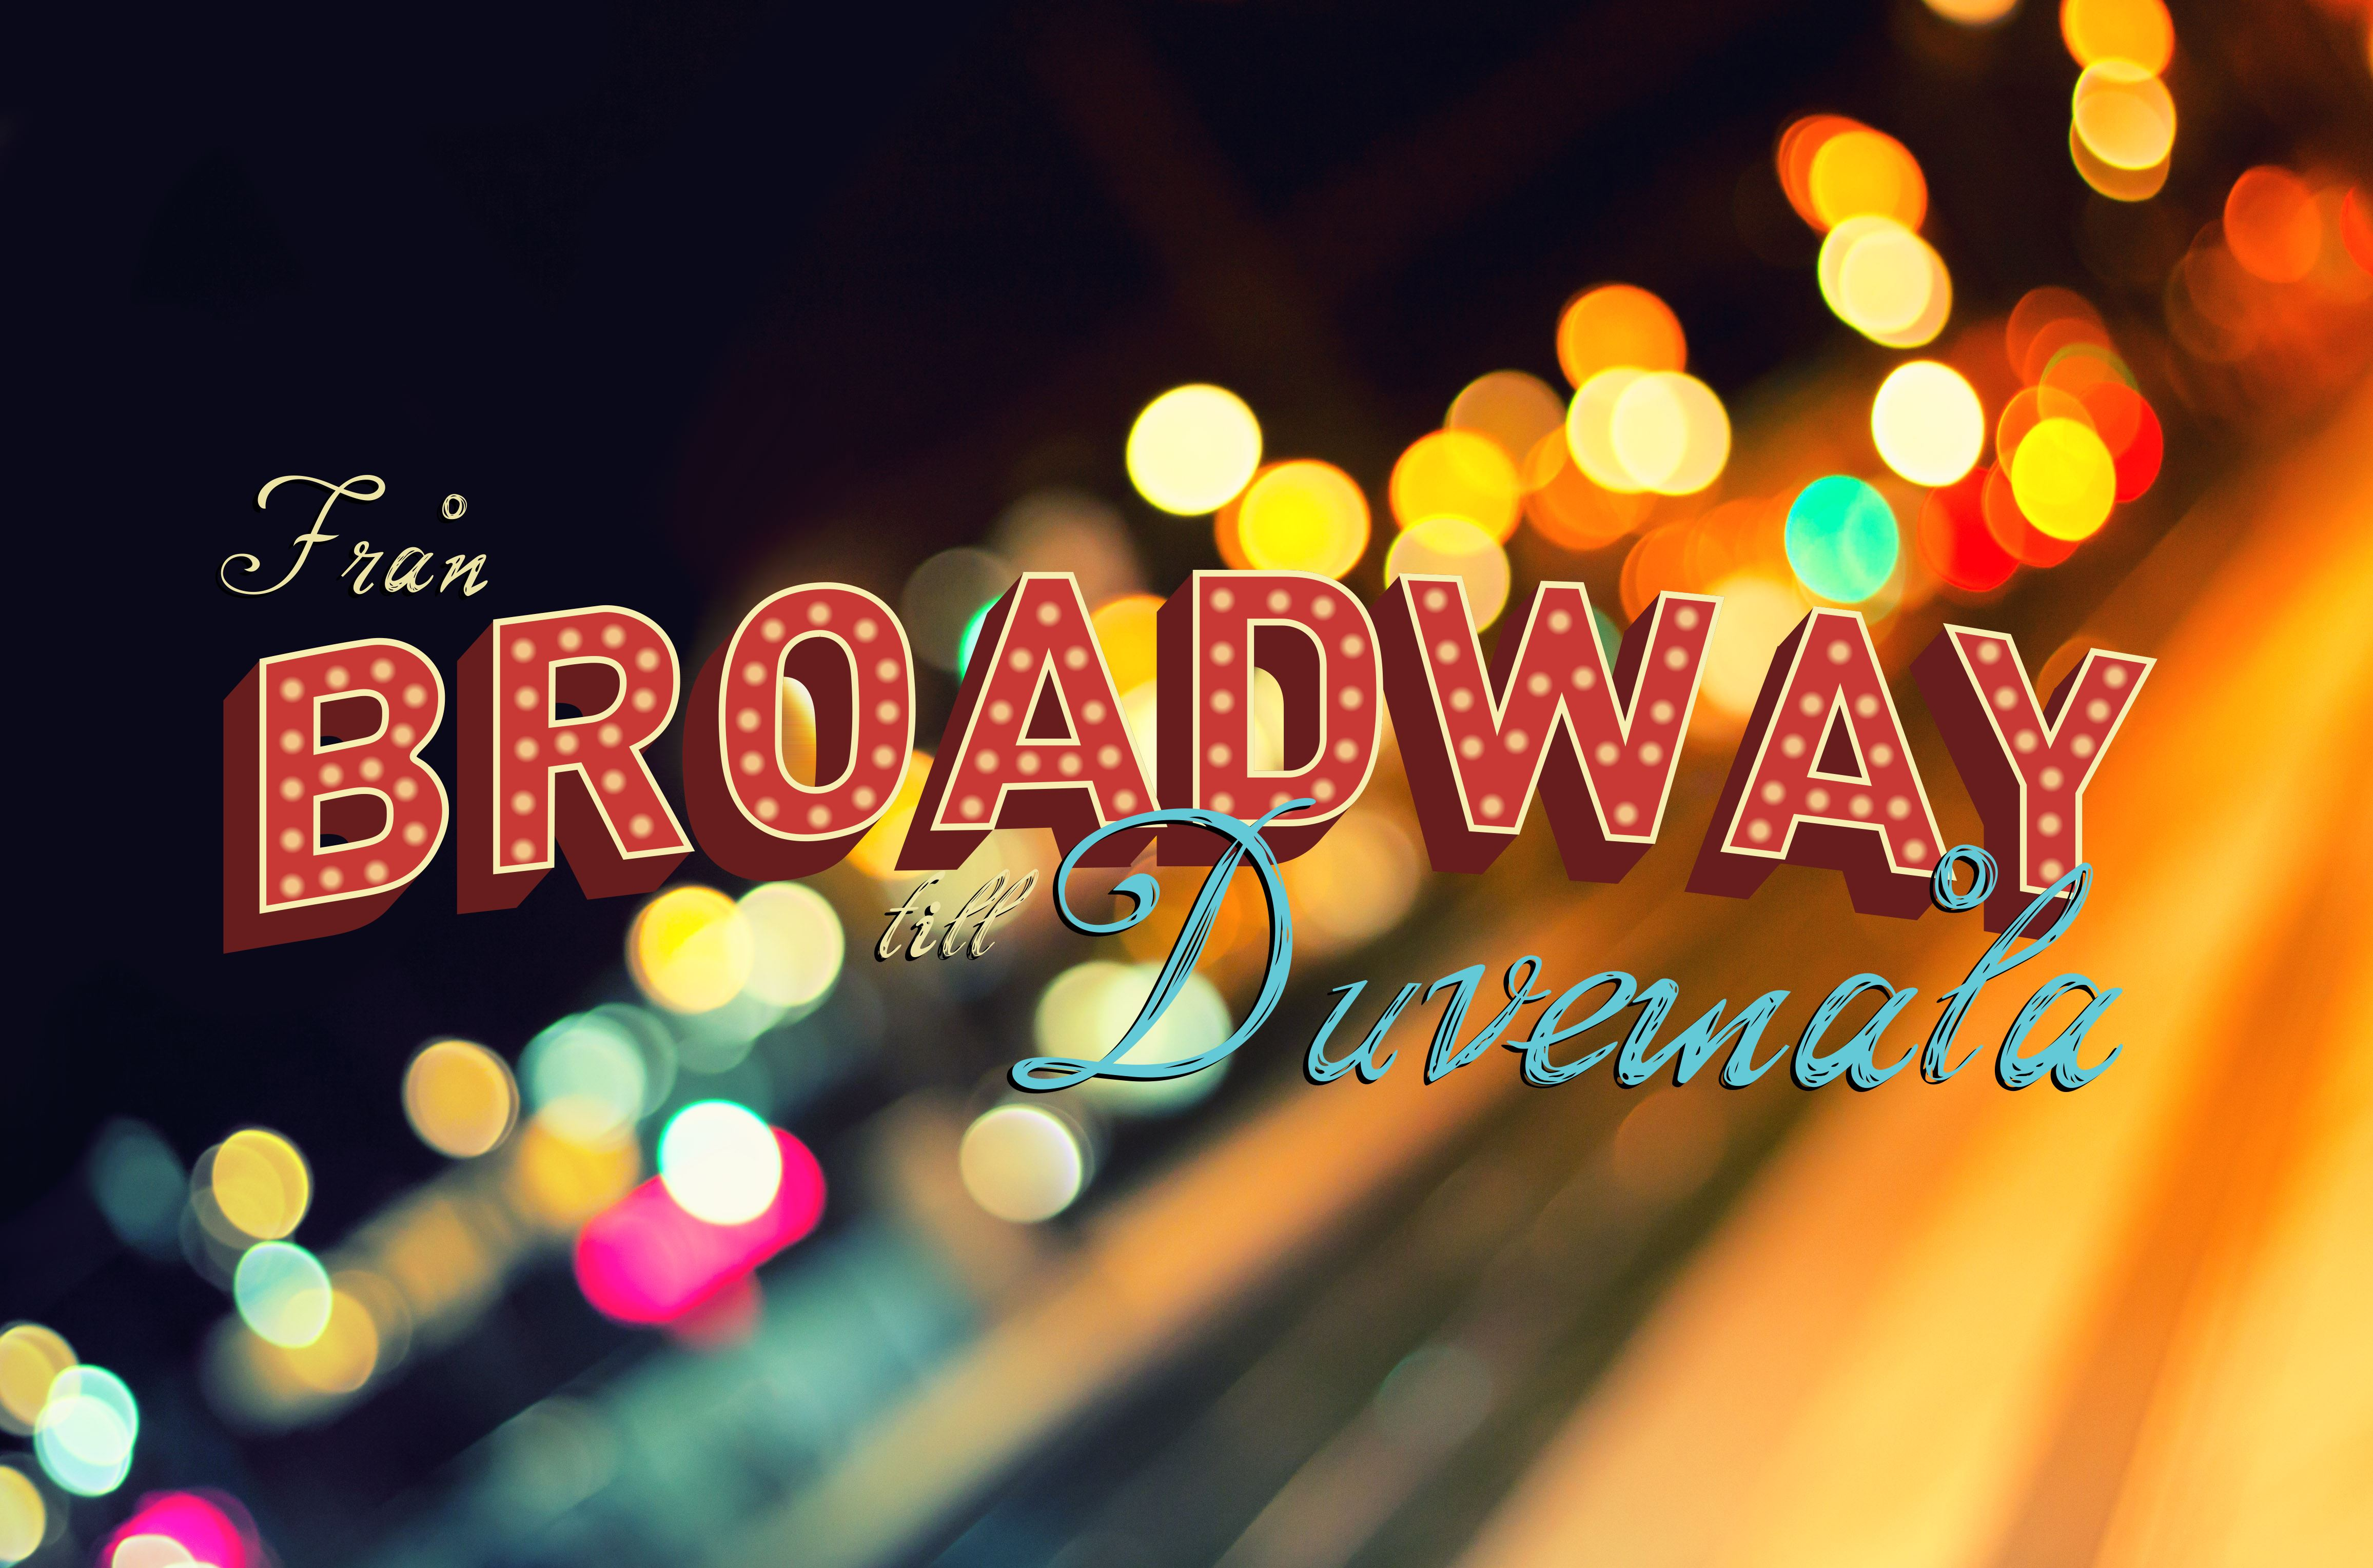 From Broadway to Duvemåla